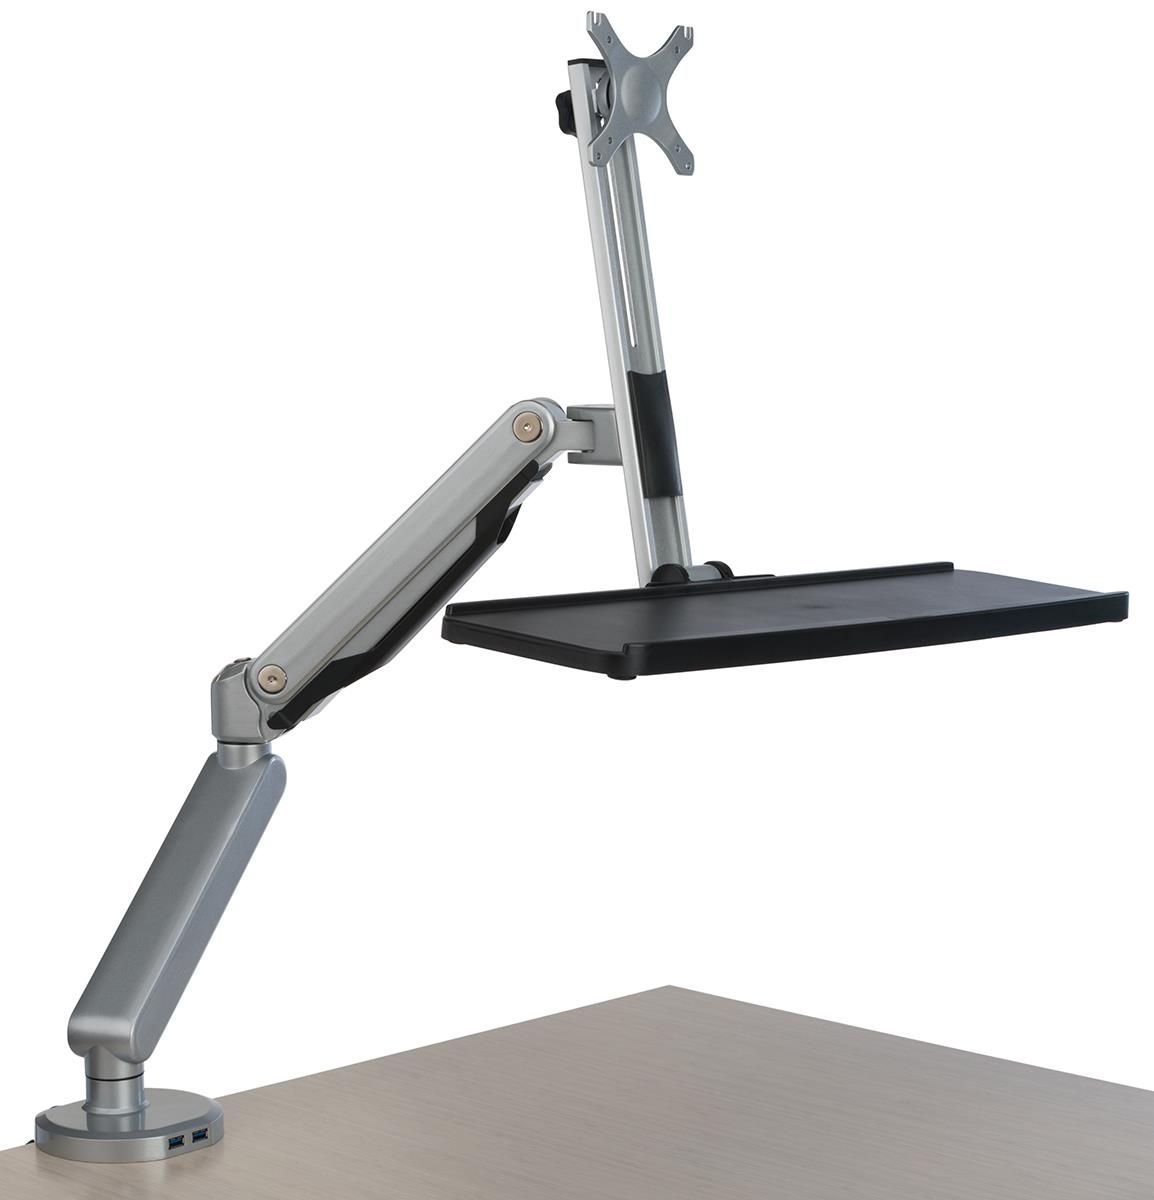 chair mount keyboard tray canada momarsh invisichair blind desk monitor arm with ports for usb